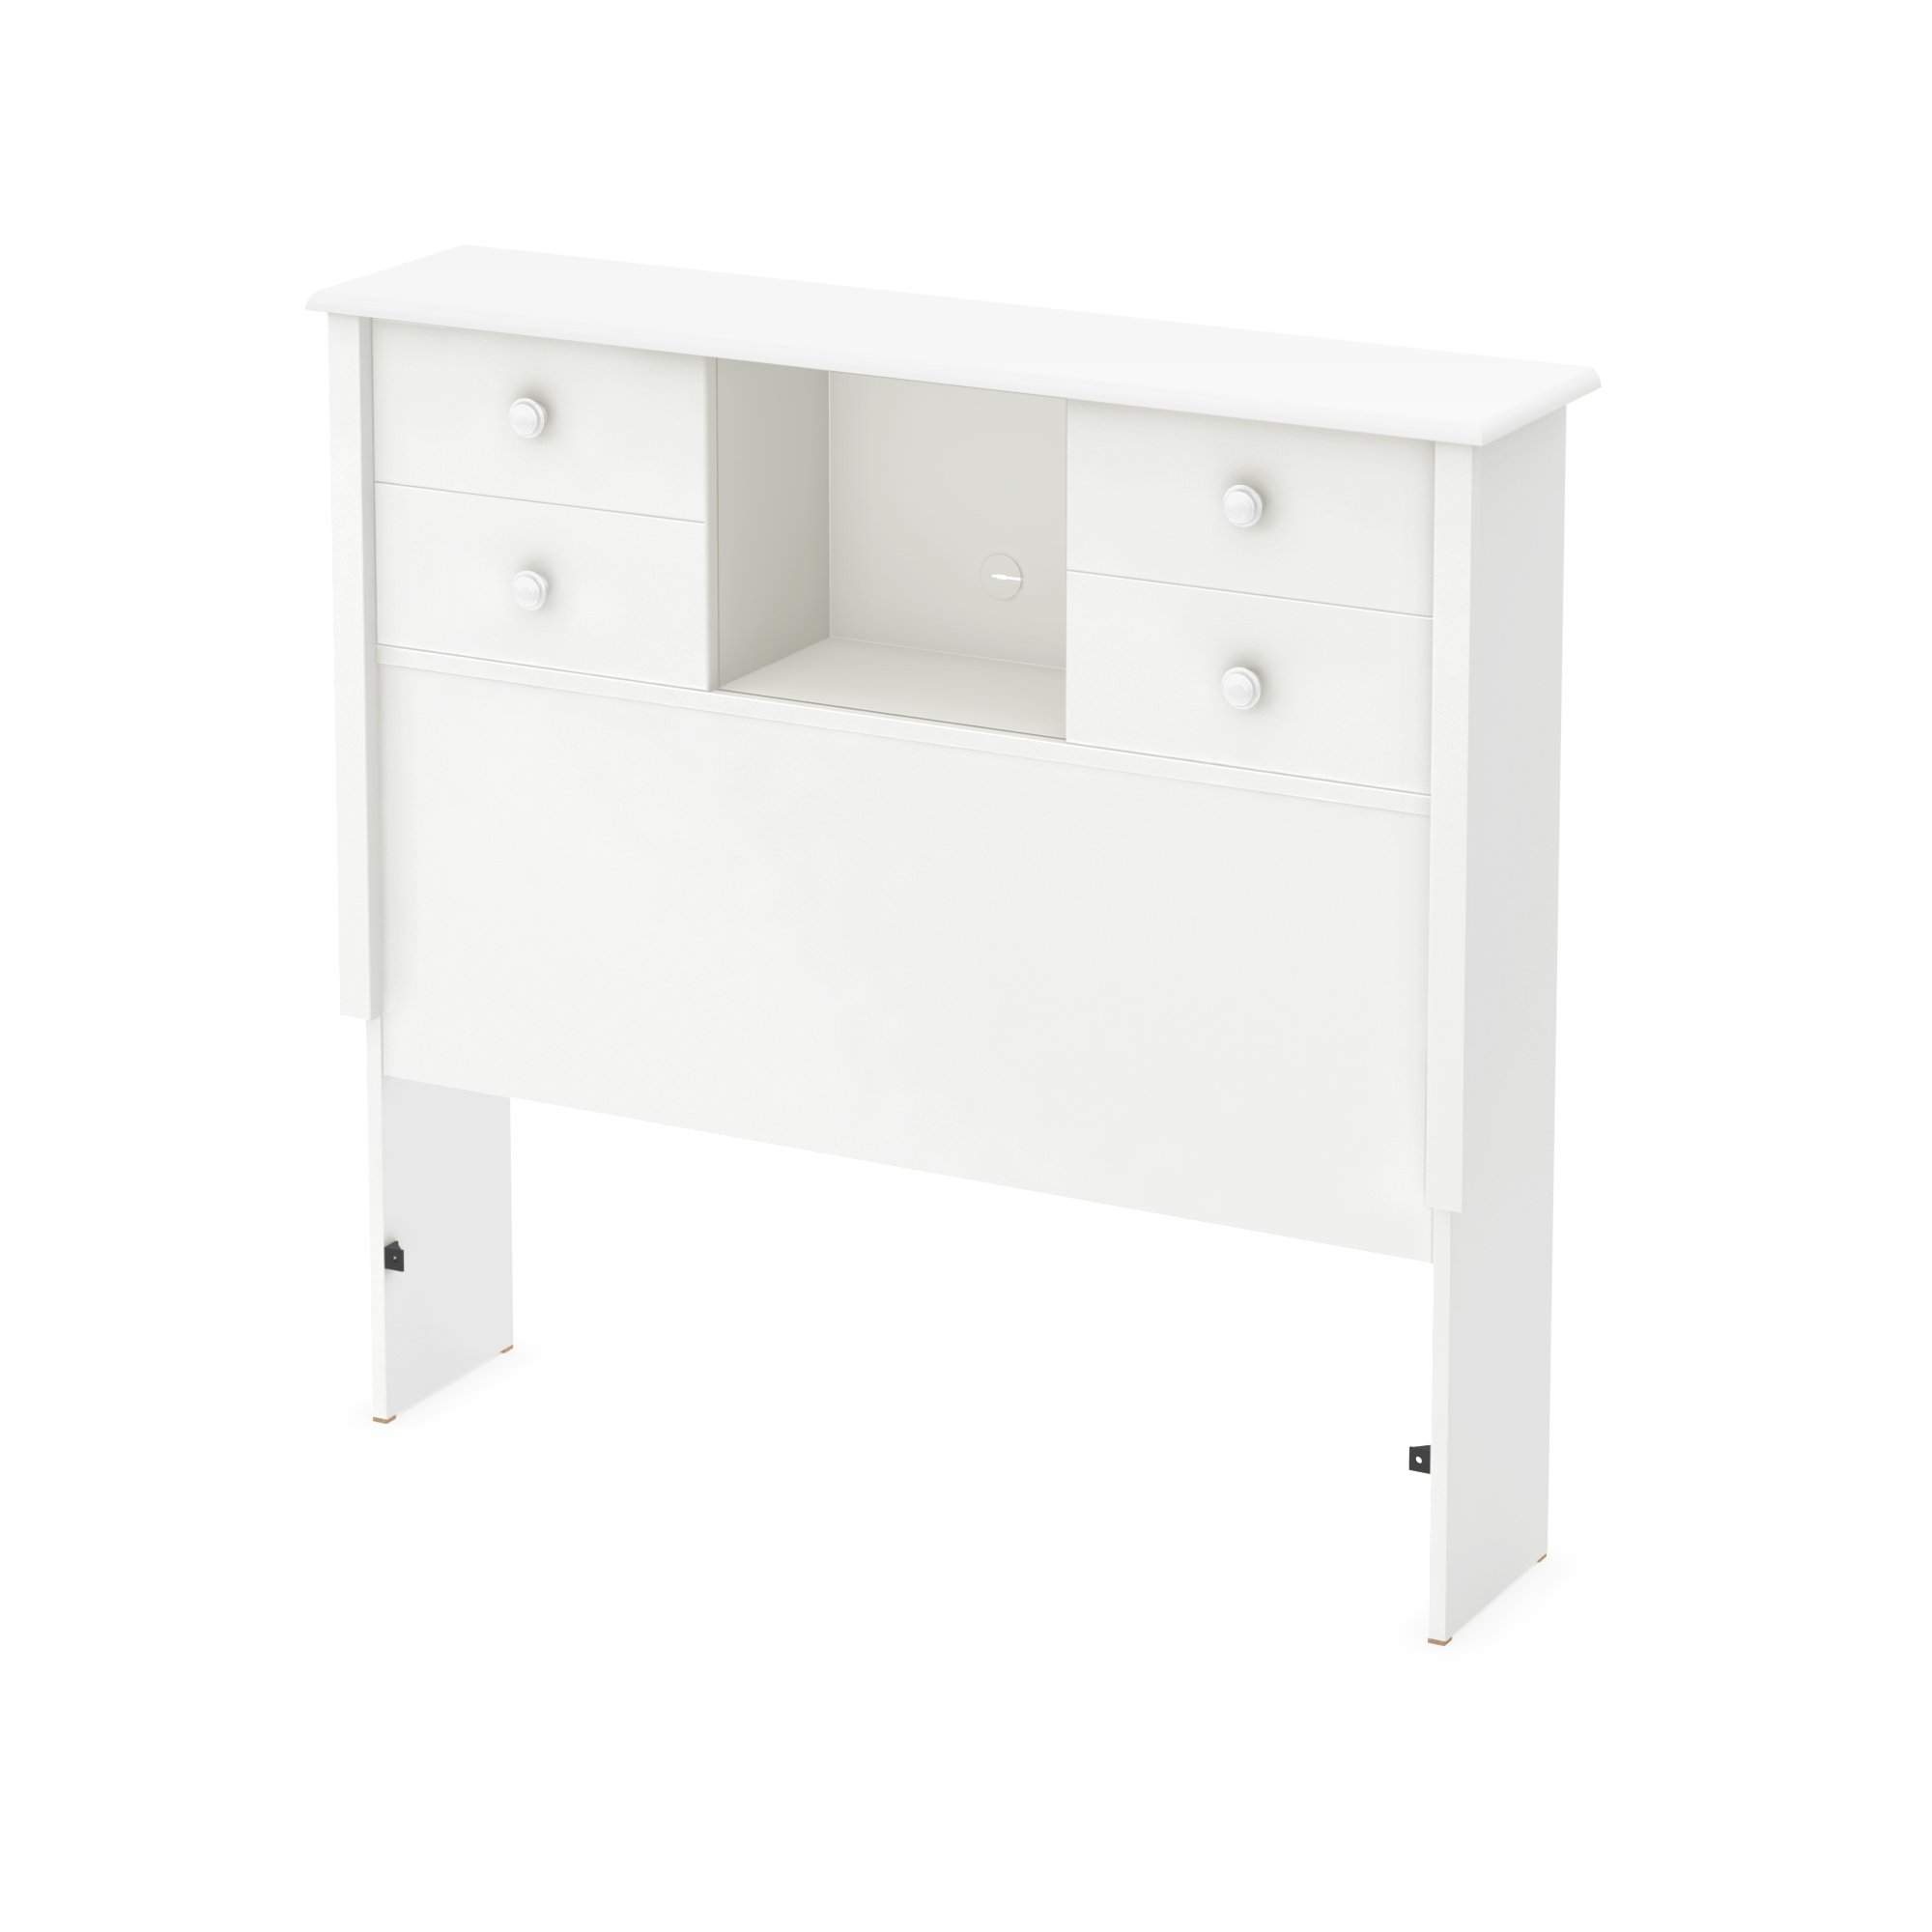 South Shore 39'' Little Smileys Bookcase Headboard with Sliding Doors, Twin, Pure White